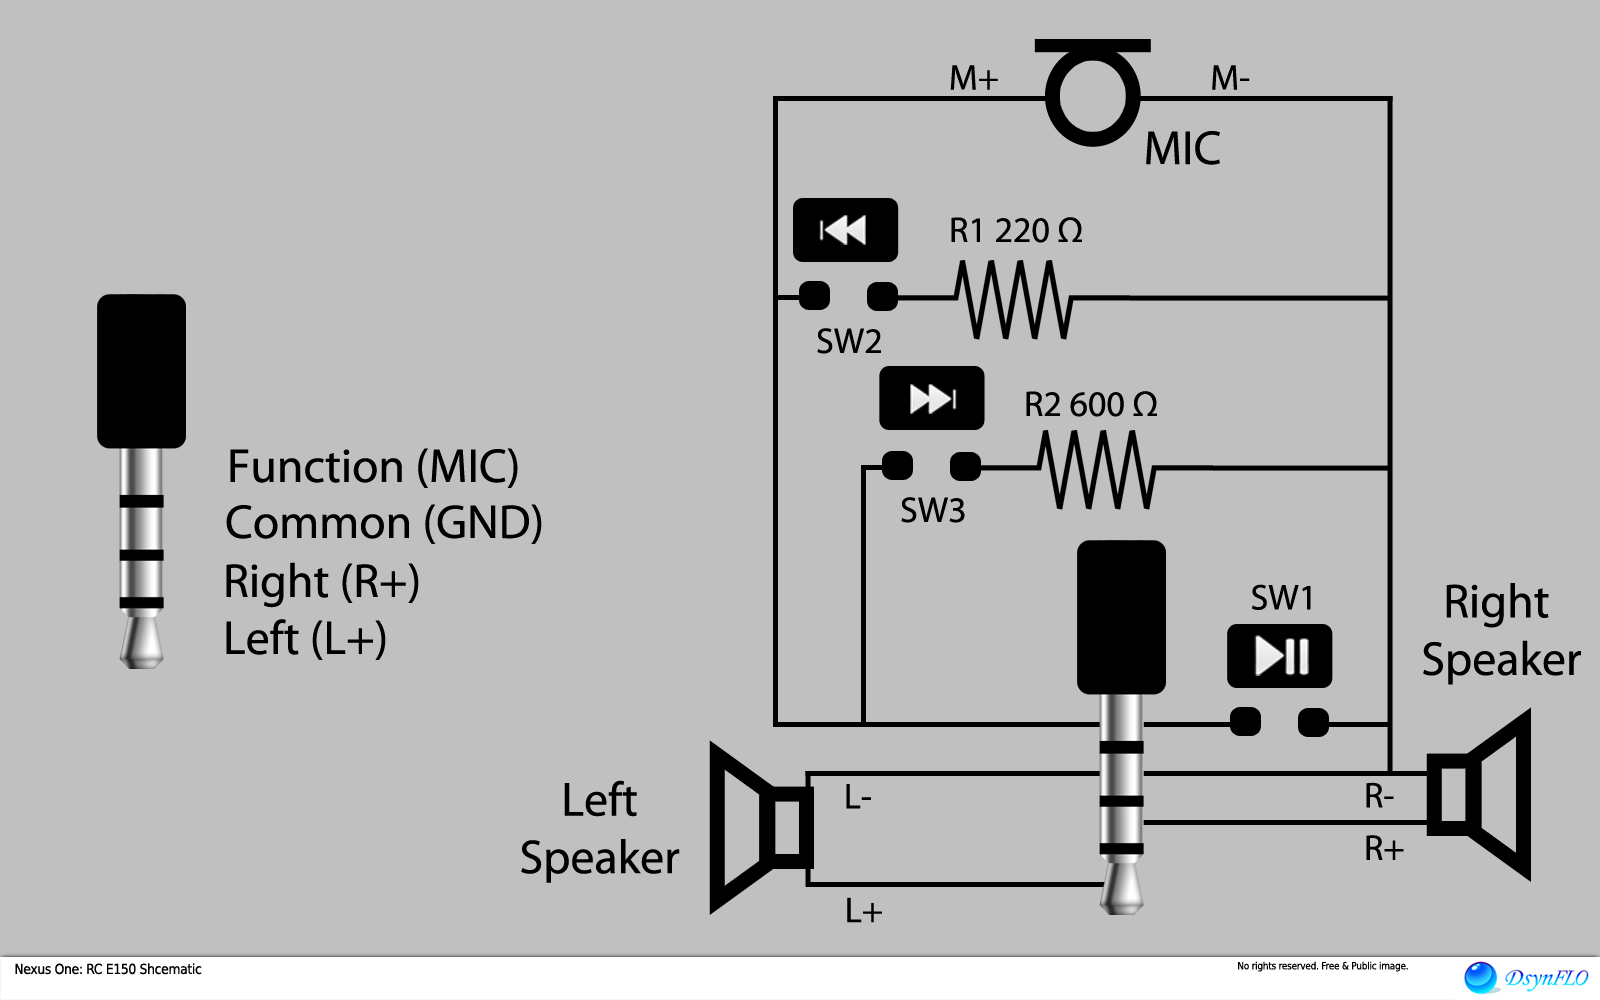 wiring+schematic?resize\=665%2C416 headphone with mic wiring diagram 3 5mm jack wiring diagram usb wire diagram and function at fashall.co